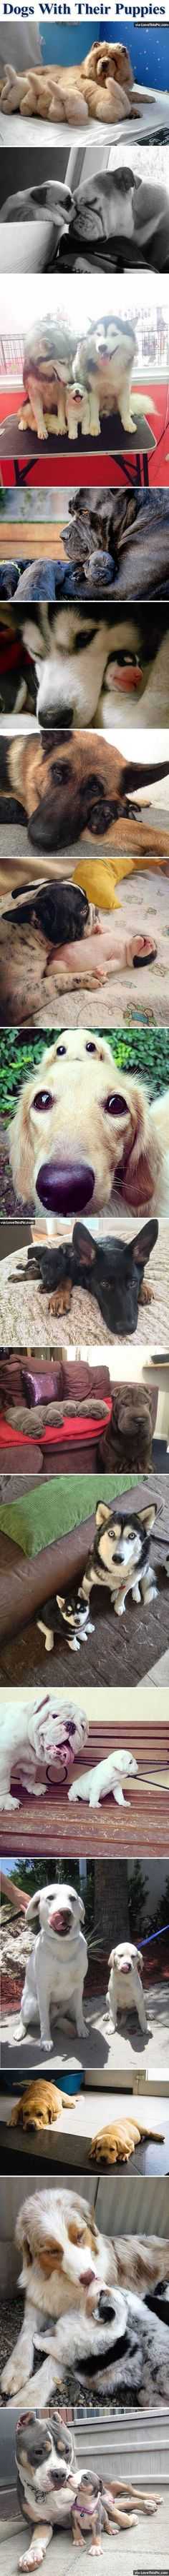 Dogs with their puppies Oh my God! Can they all come live at my house?